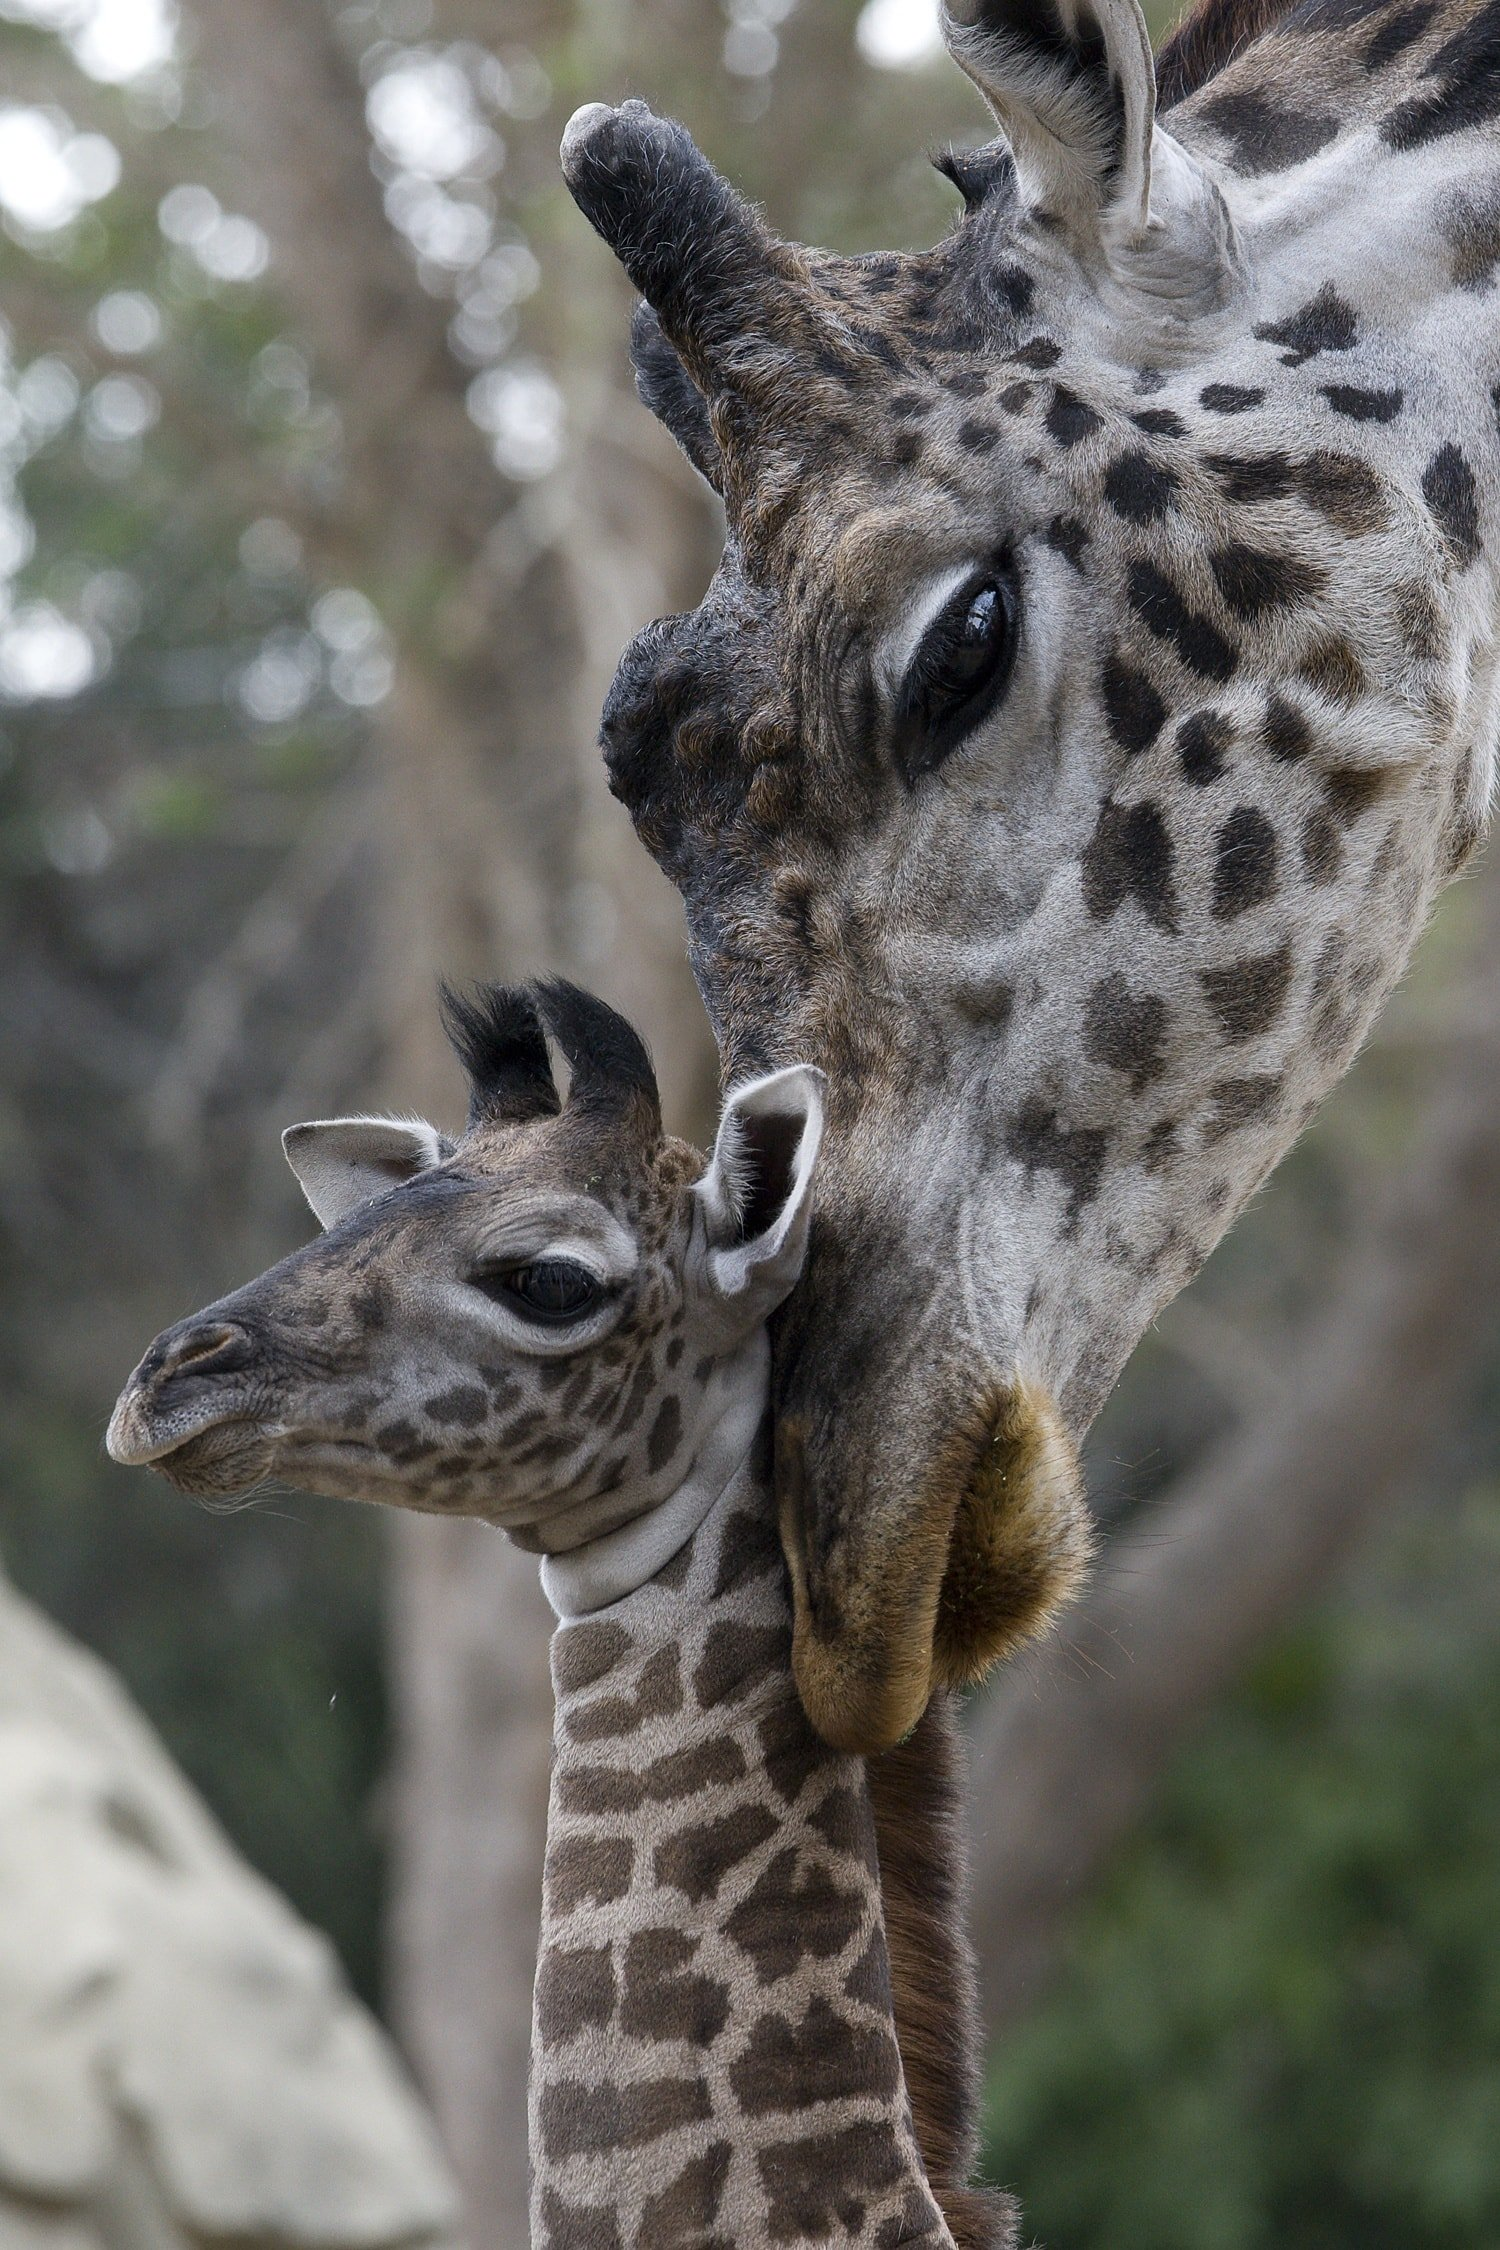 A baby and mama giraffe cuddling at San Diego Zoo with kids